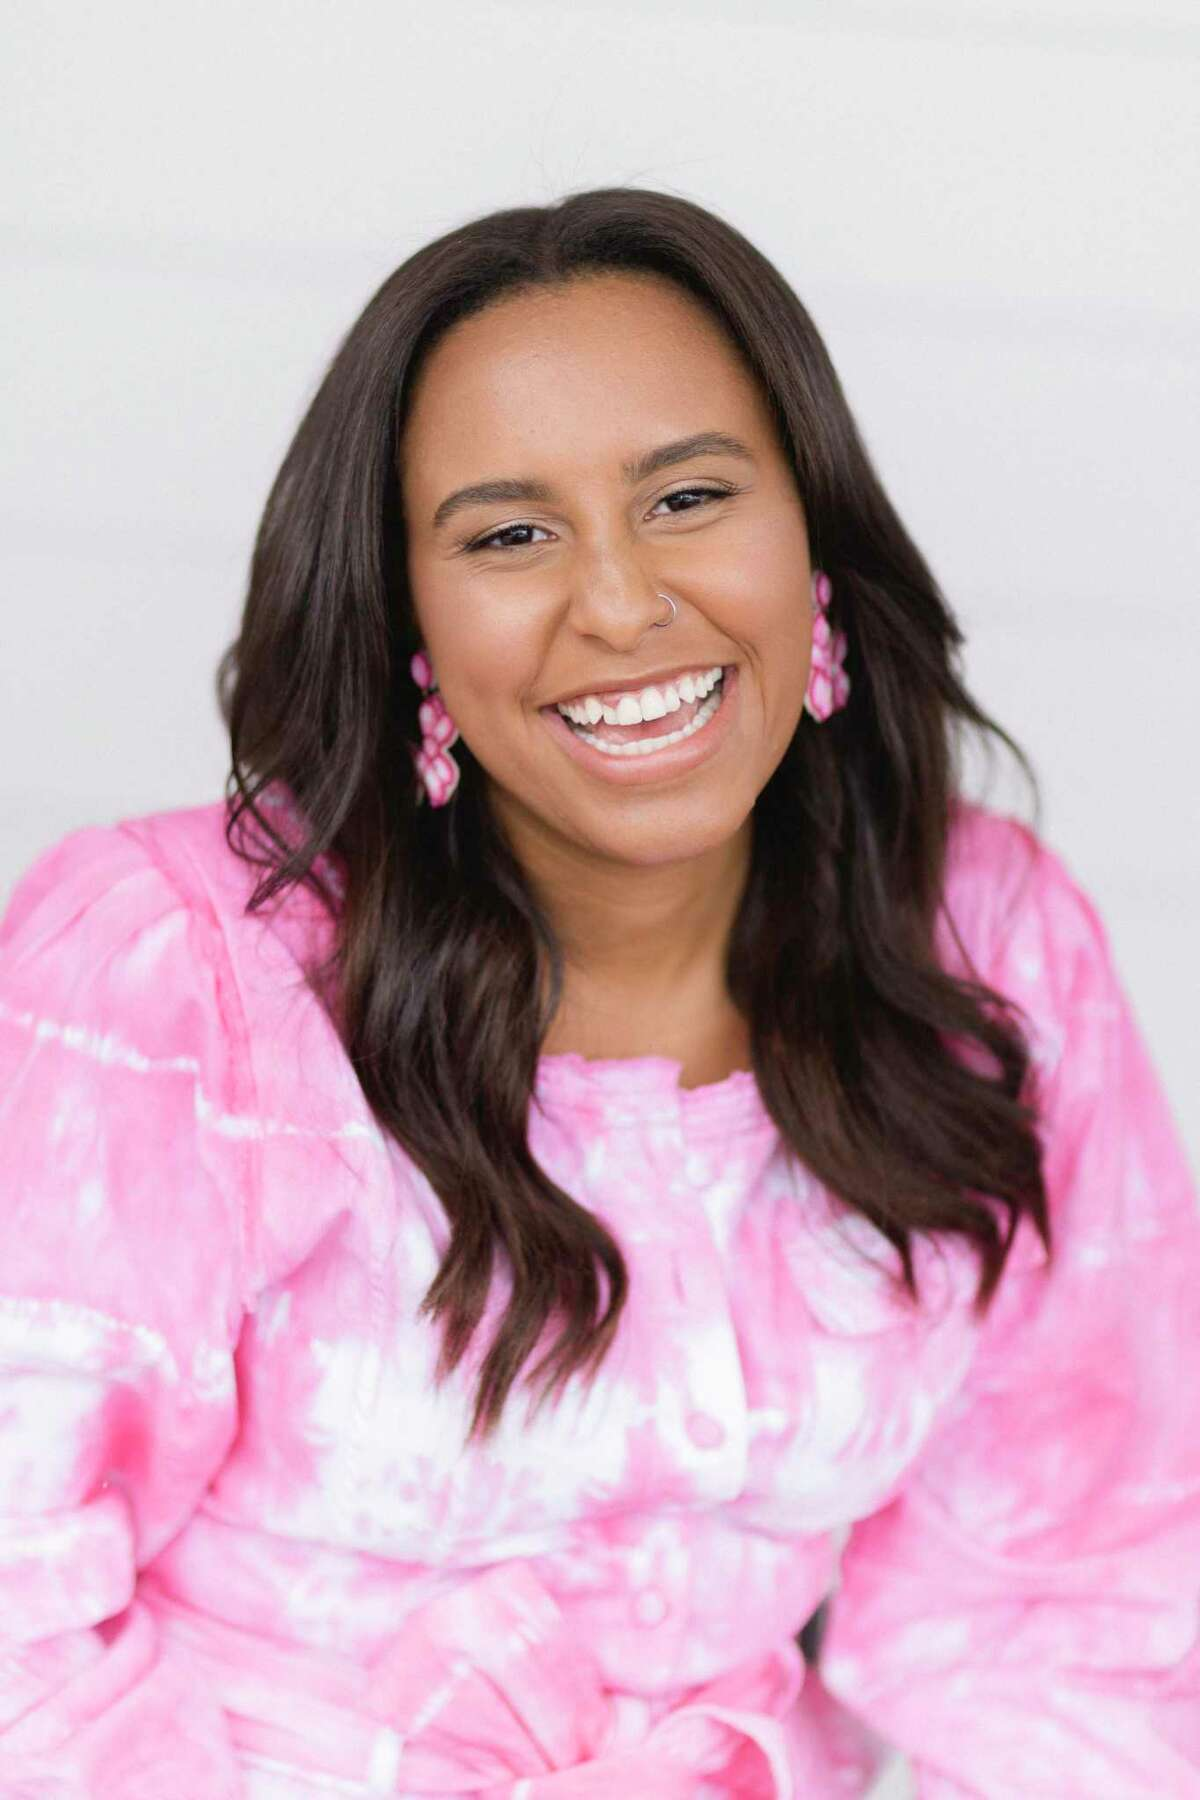 Ashley Sodipo, a West Hartford native and Glastonbury resident, will open the Pink Flamingo Party Co. on Farmington Avenue in West Hartford this October. The store will be an extension of her online party supply business.